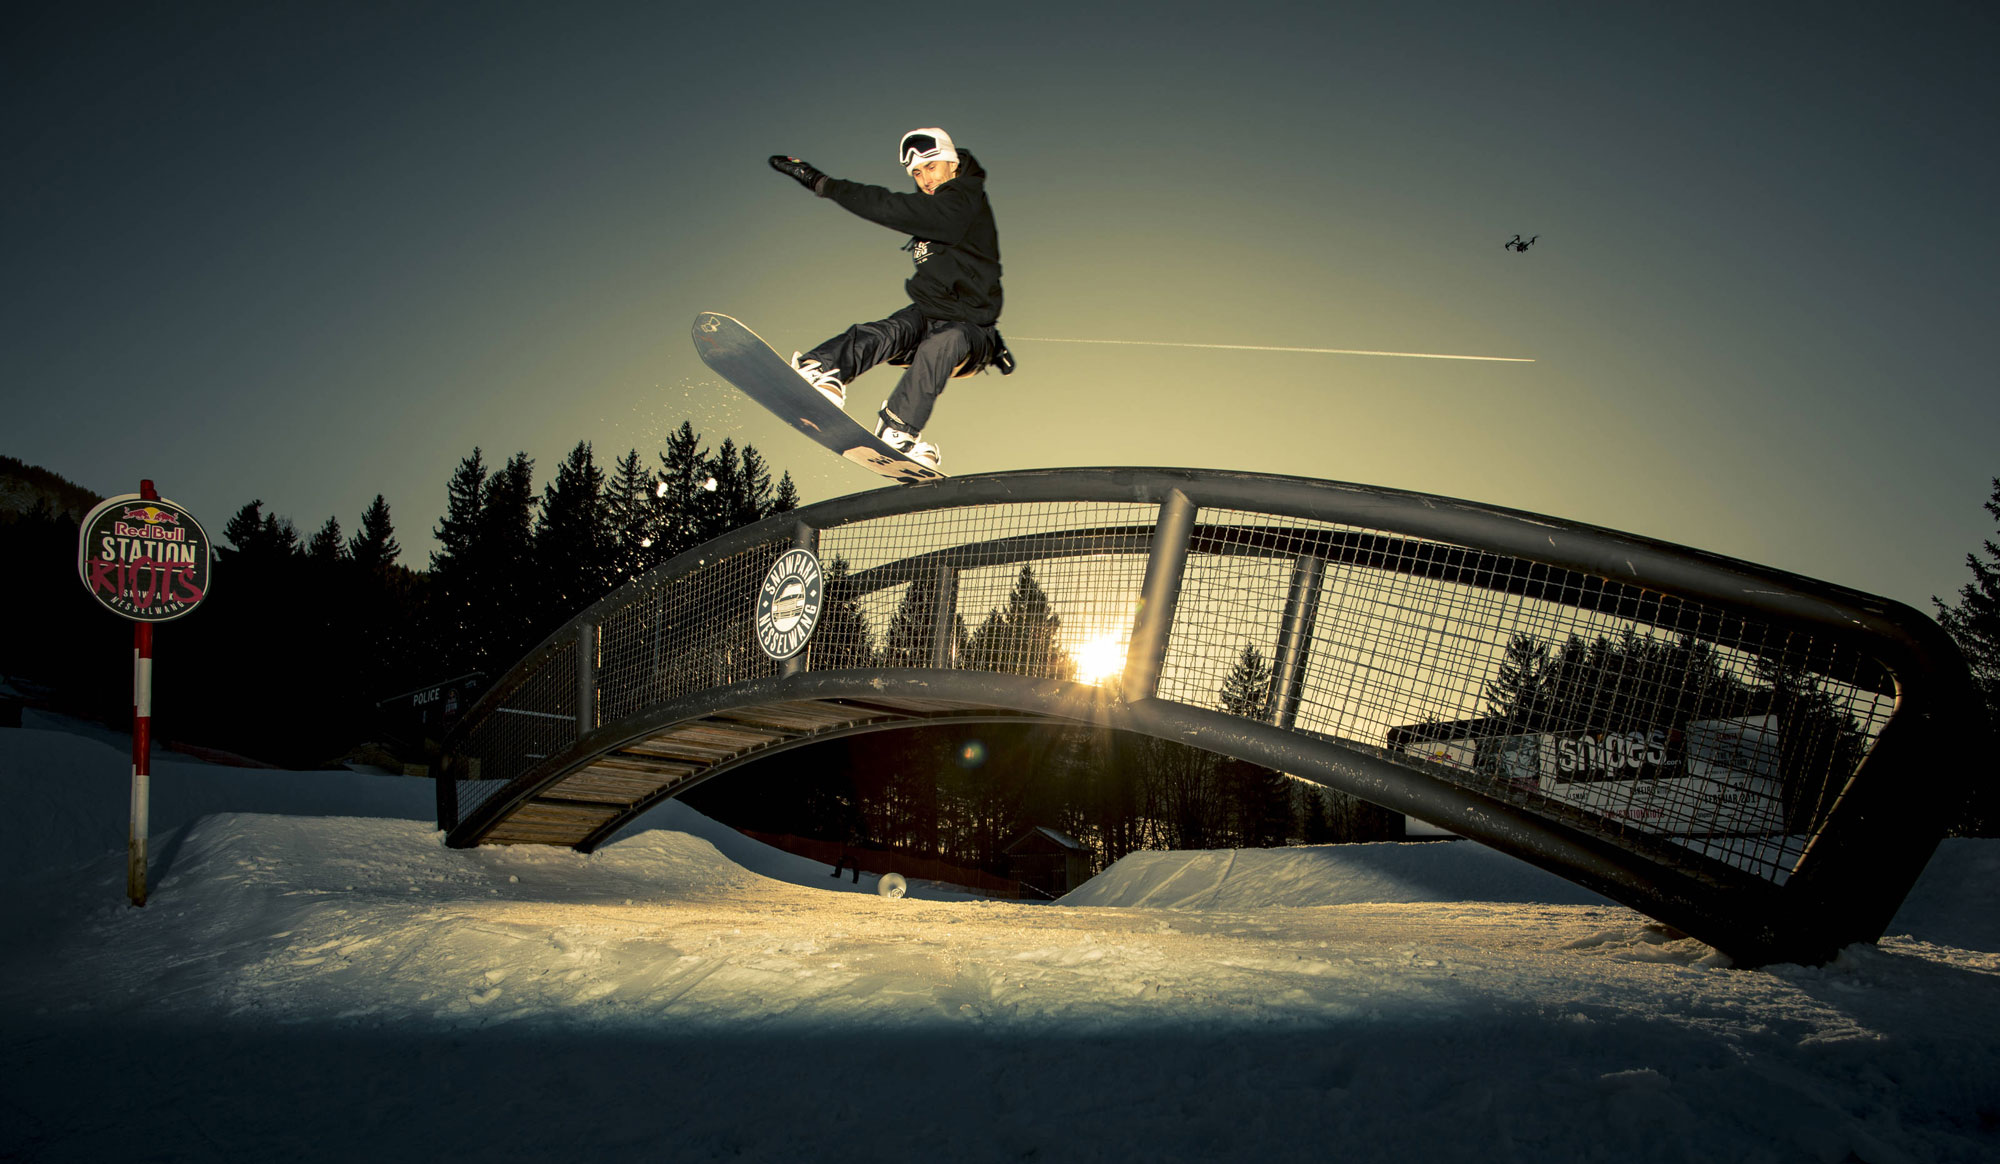 Dylan Norder. Photo: Lorenz Holder